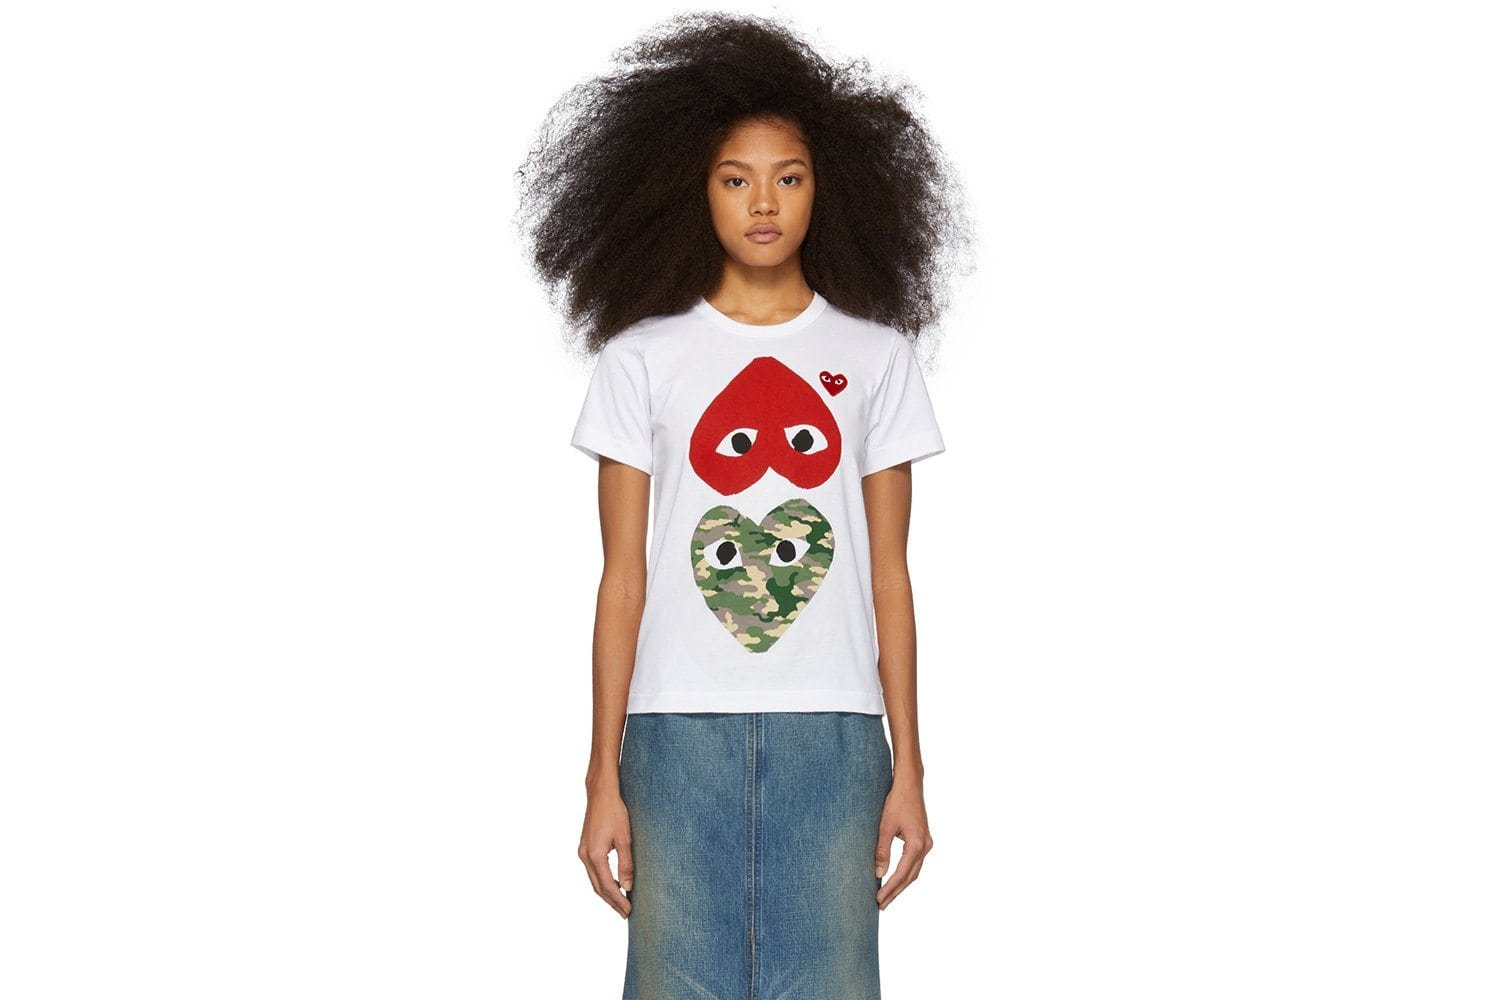 BIG RED UPSIDE DOWN/LITTLE RED HEART/BIG CAMO HEART WOMENS SOFTGOODS COMME DES GARCONS